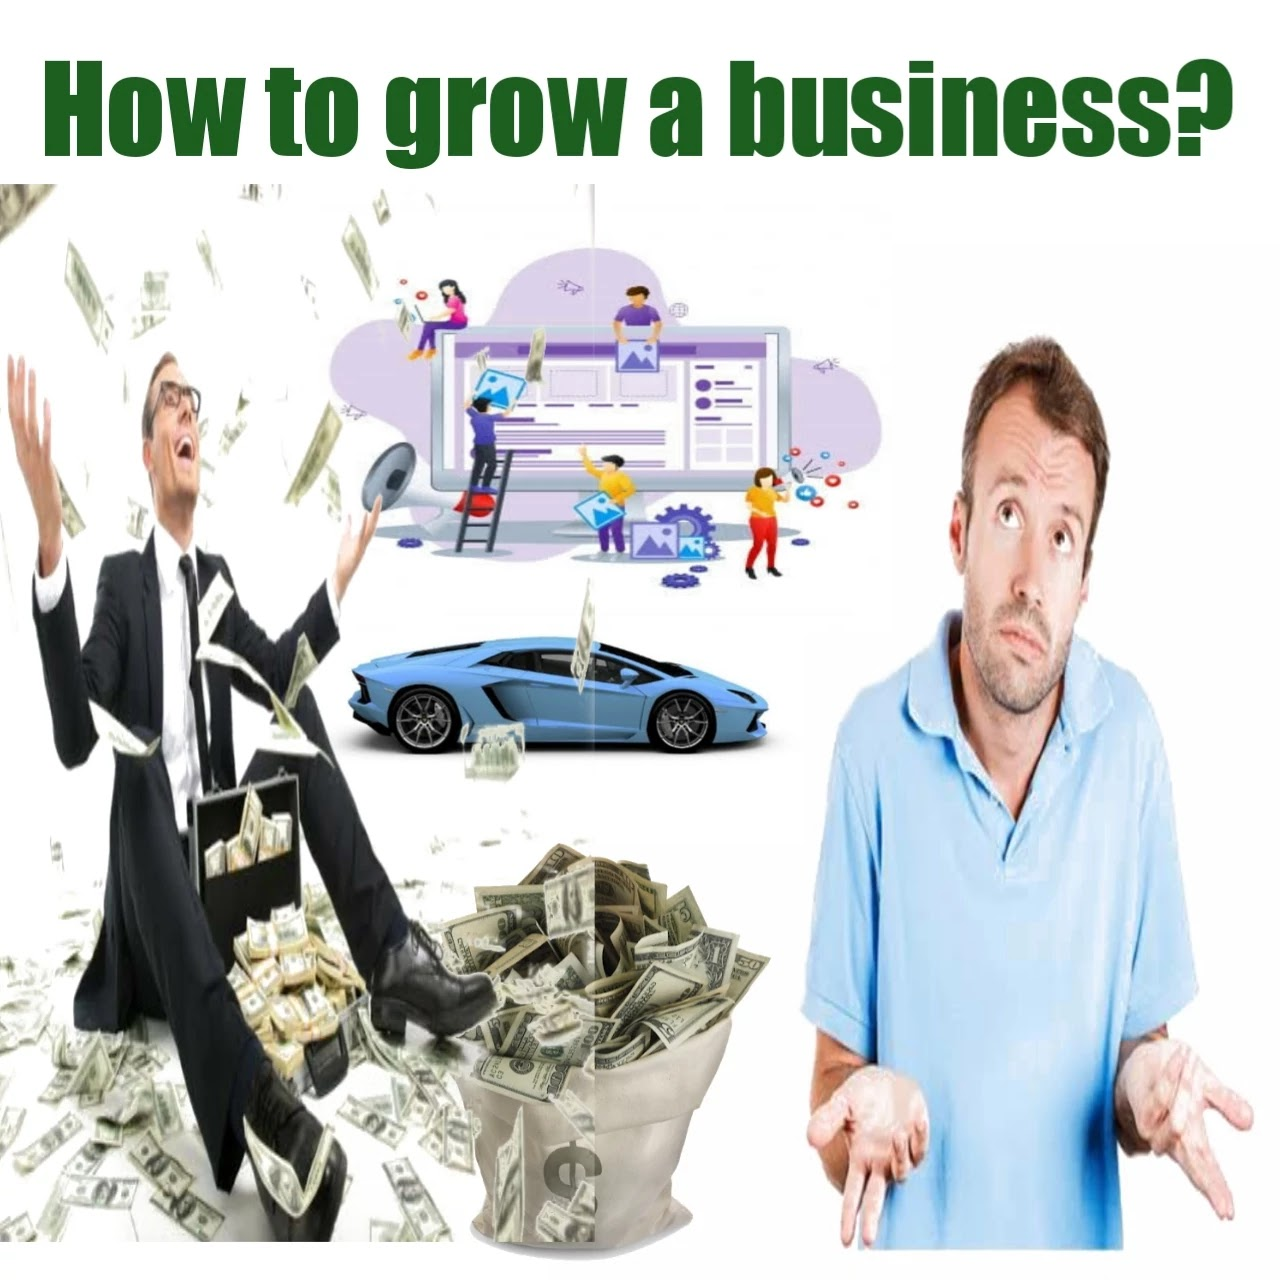 How to grow a business 2020-21